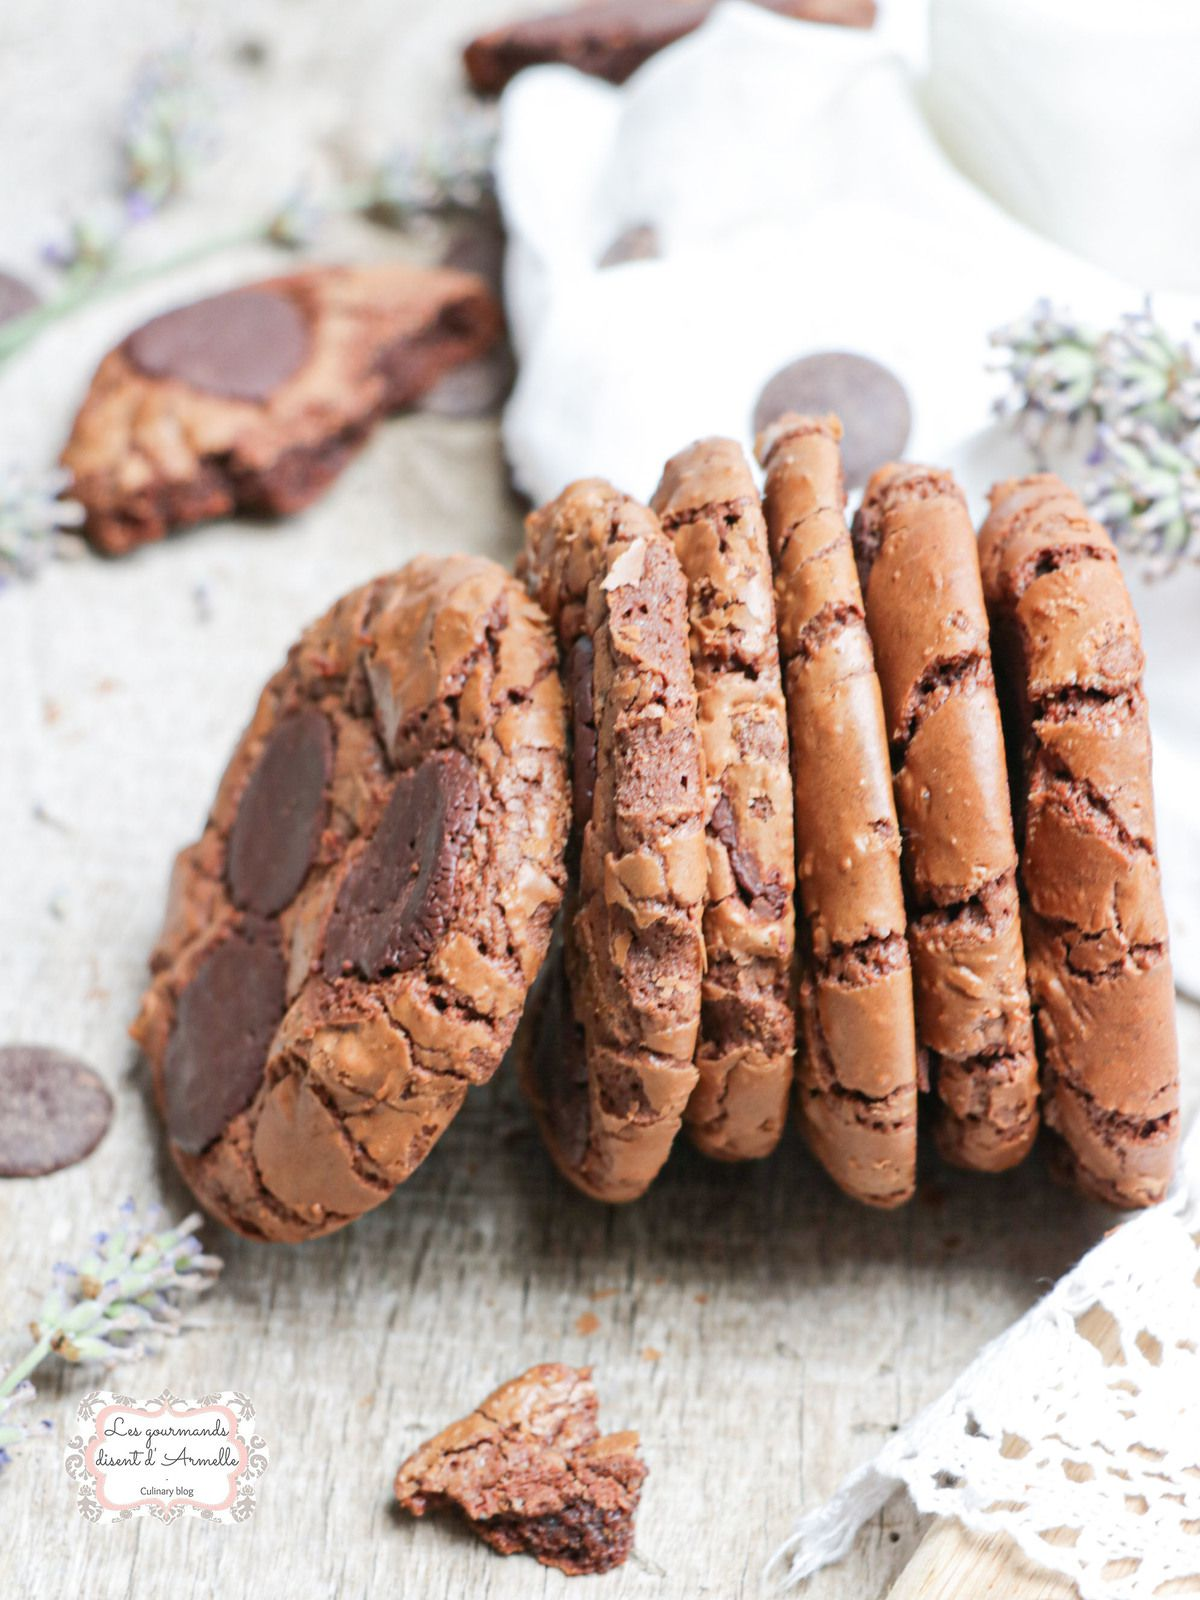 Outrageous Cookies ou cookies brownies @ Les Gourmands {disent} d'Armelle